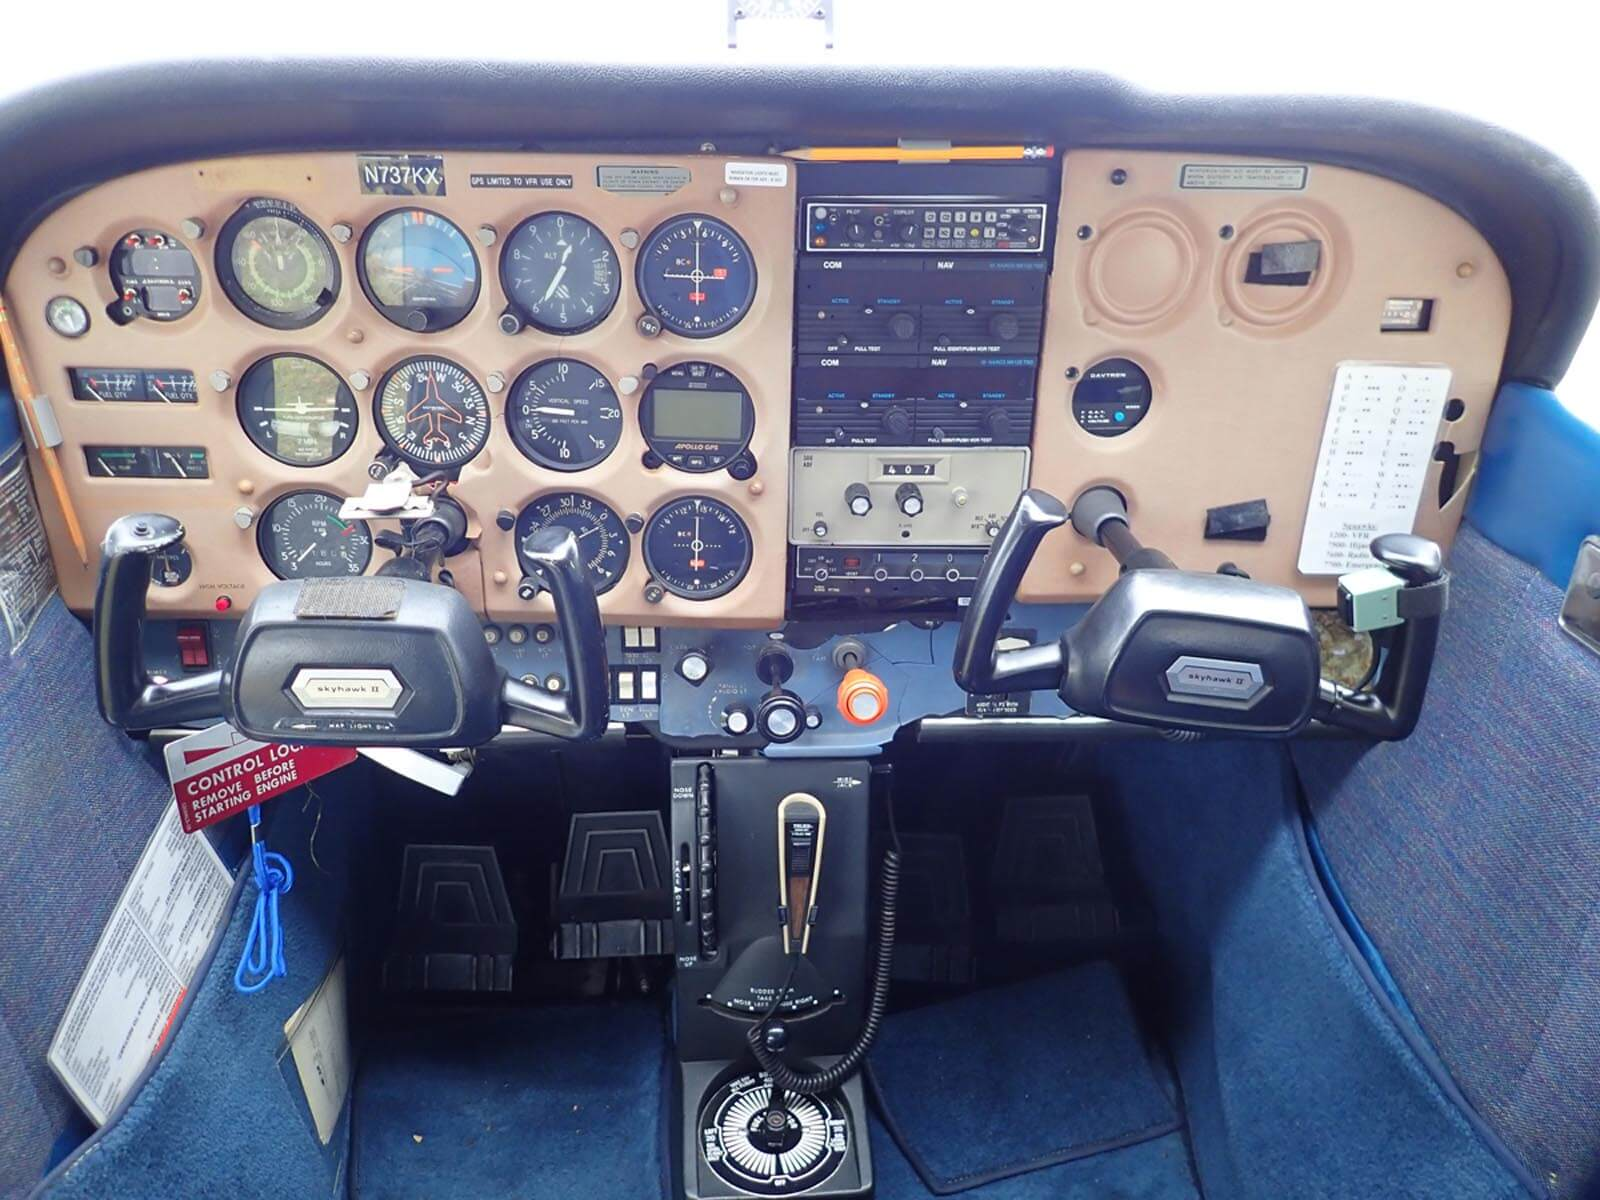 1978 Cessna 172N - FOR SALE at Princeton Airport - Contact Ken Nierenberg at 609-731-4628